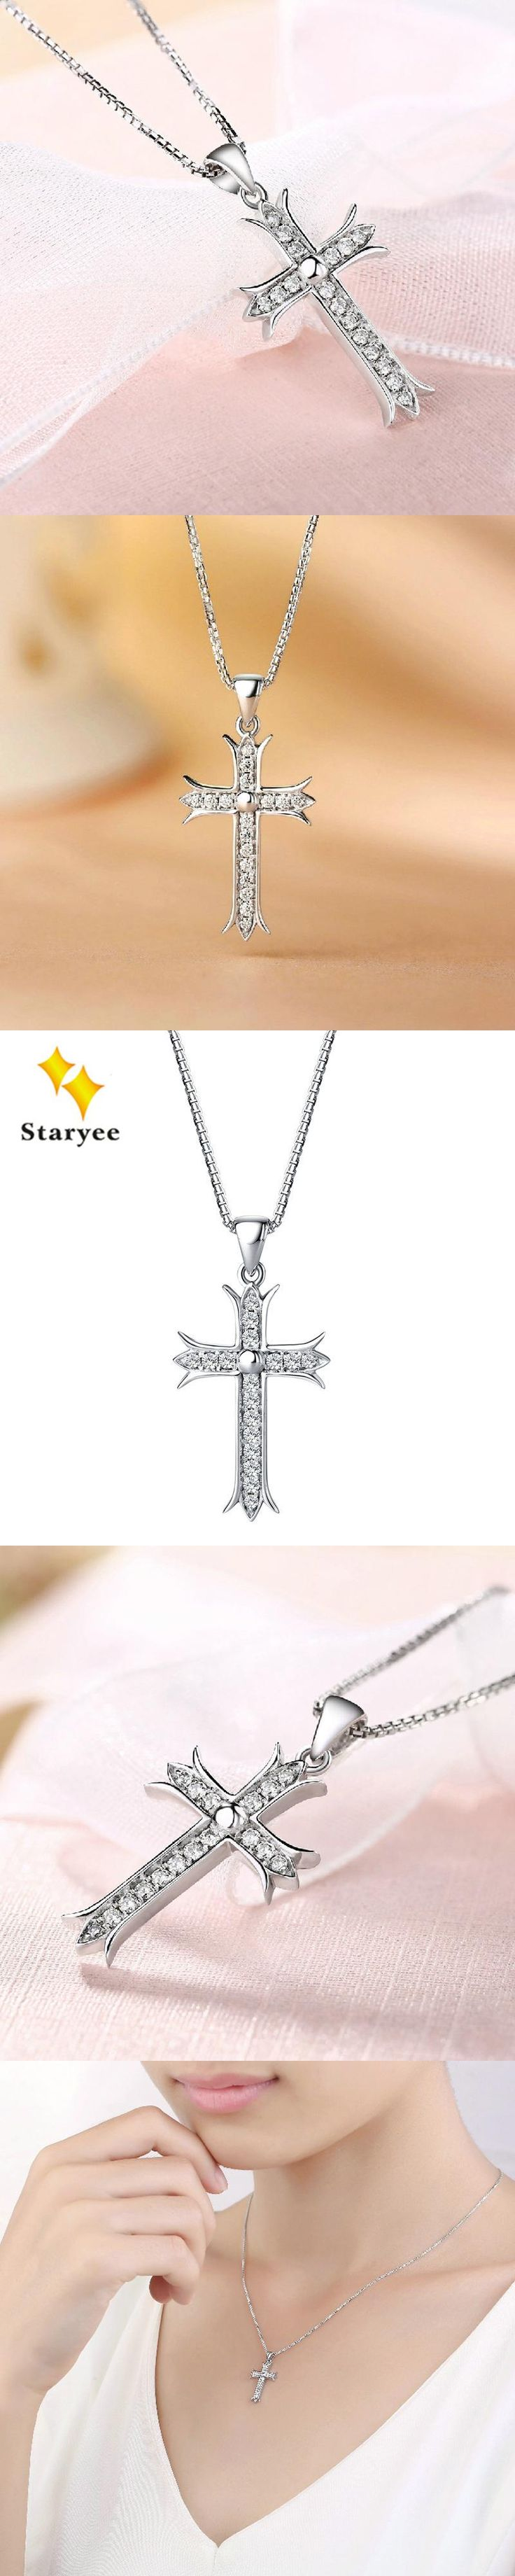 Elegant Simulated Diamond Cross Box Chain Pendant Necklaces Pure 18K 750 Solid White Gold Fine Jewelry For Women Free Engraving